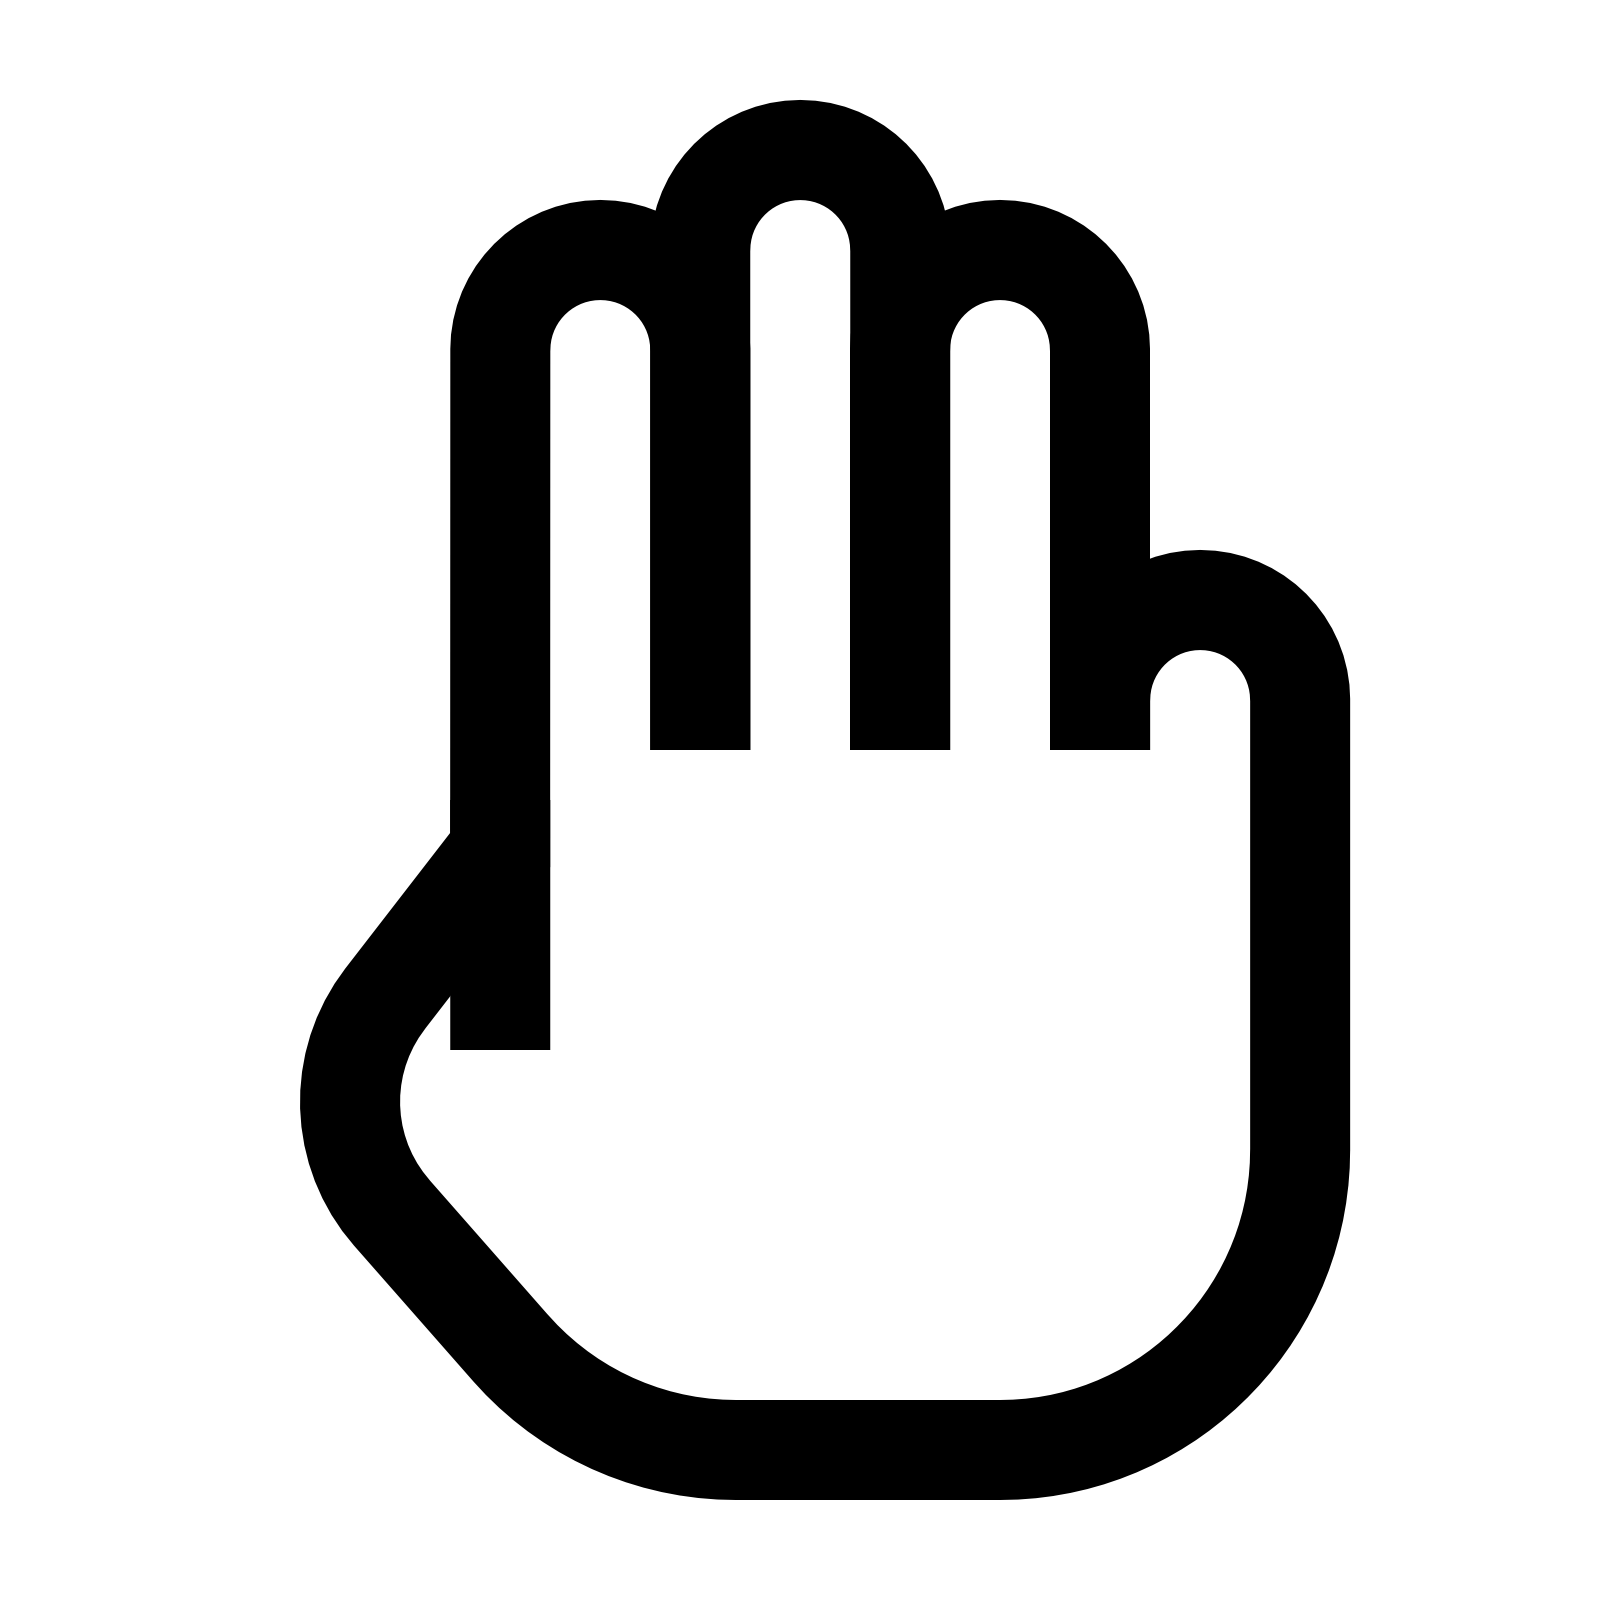 Pi drawing middle finger. Copy and paste symbol